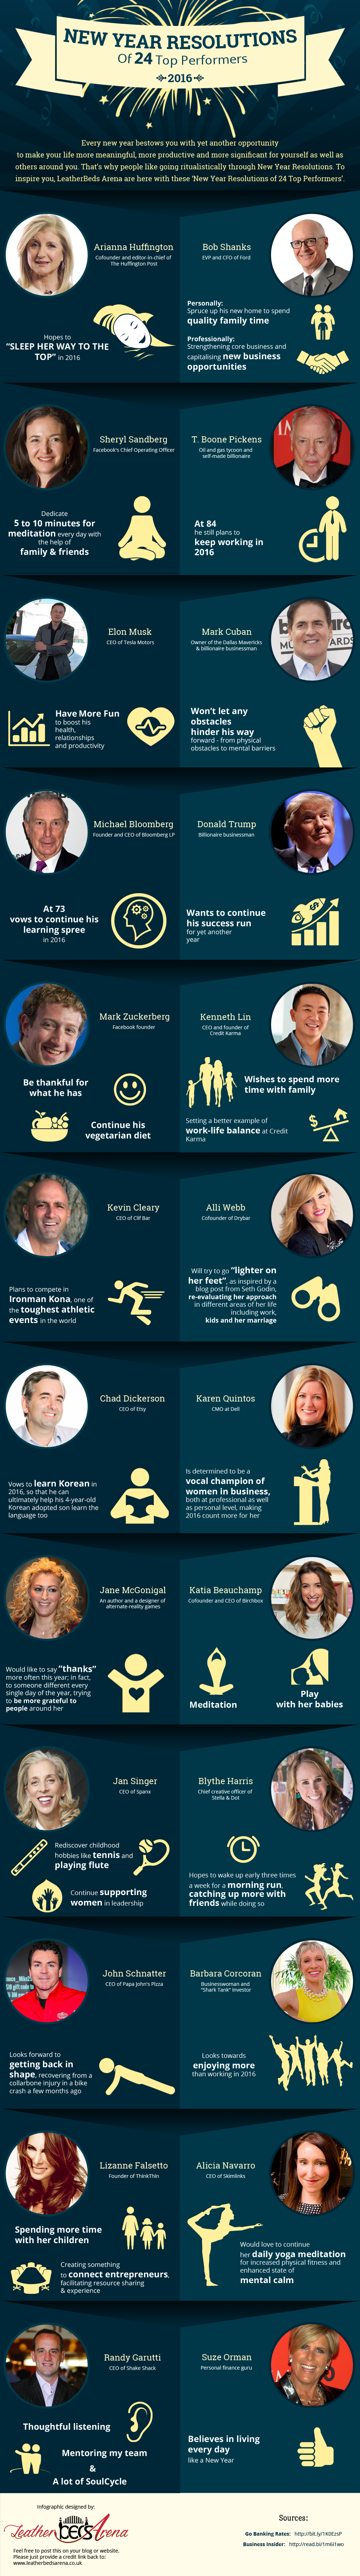 New Year Resolutions of 24 Winners #Infographic